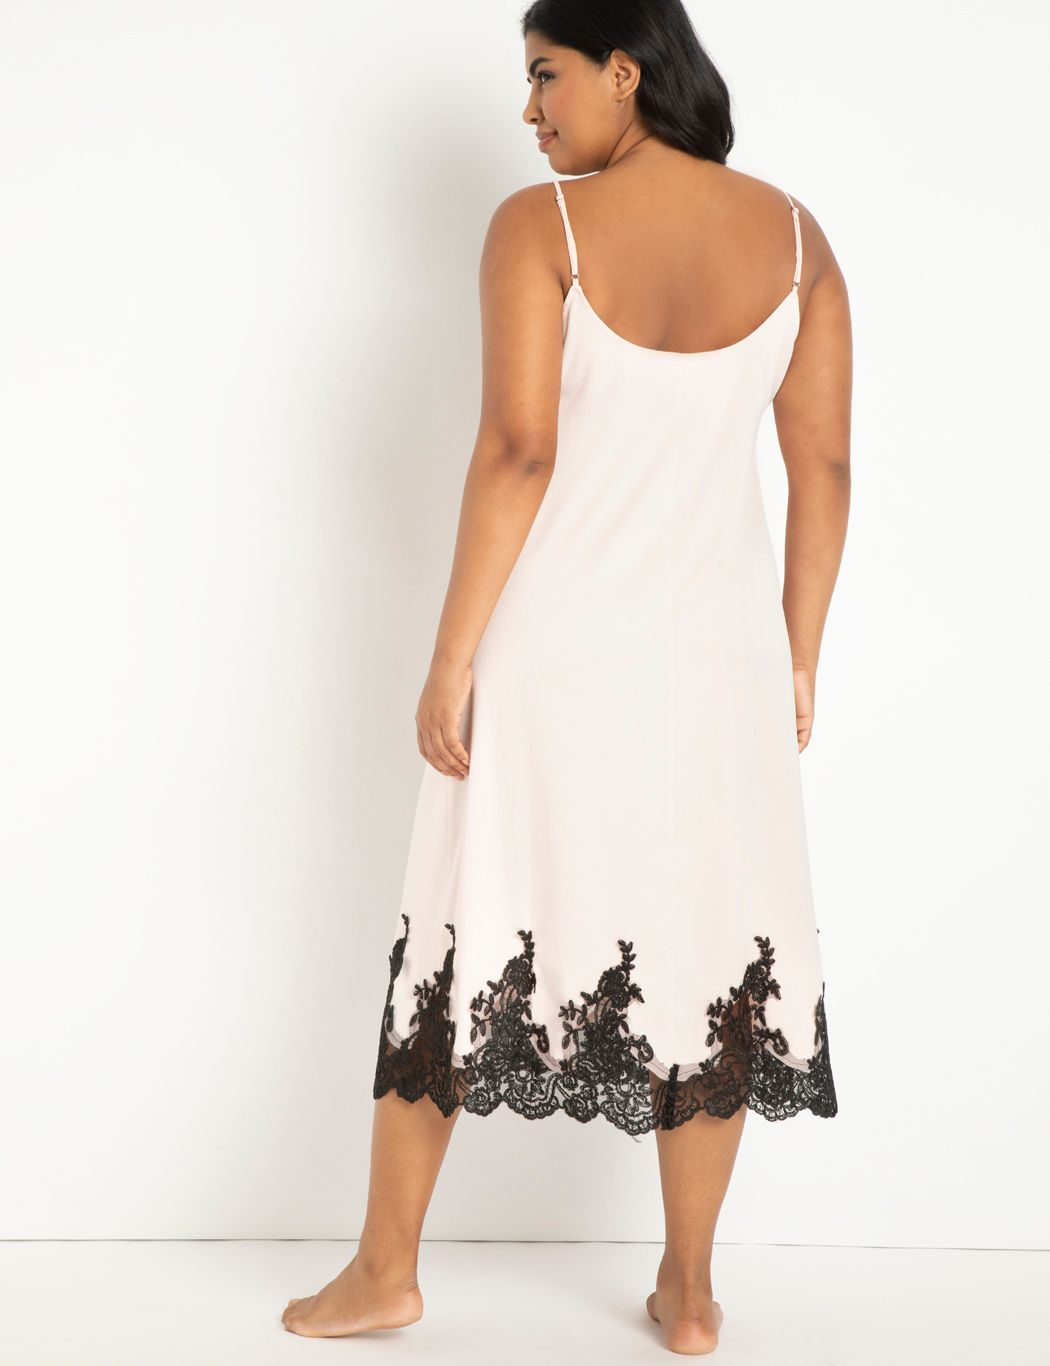 Satin Slip Dress with Lace Detail